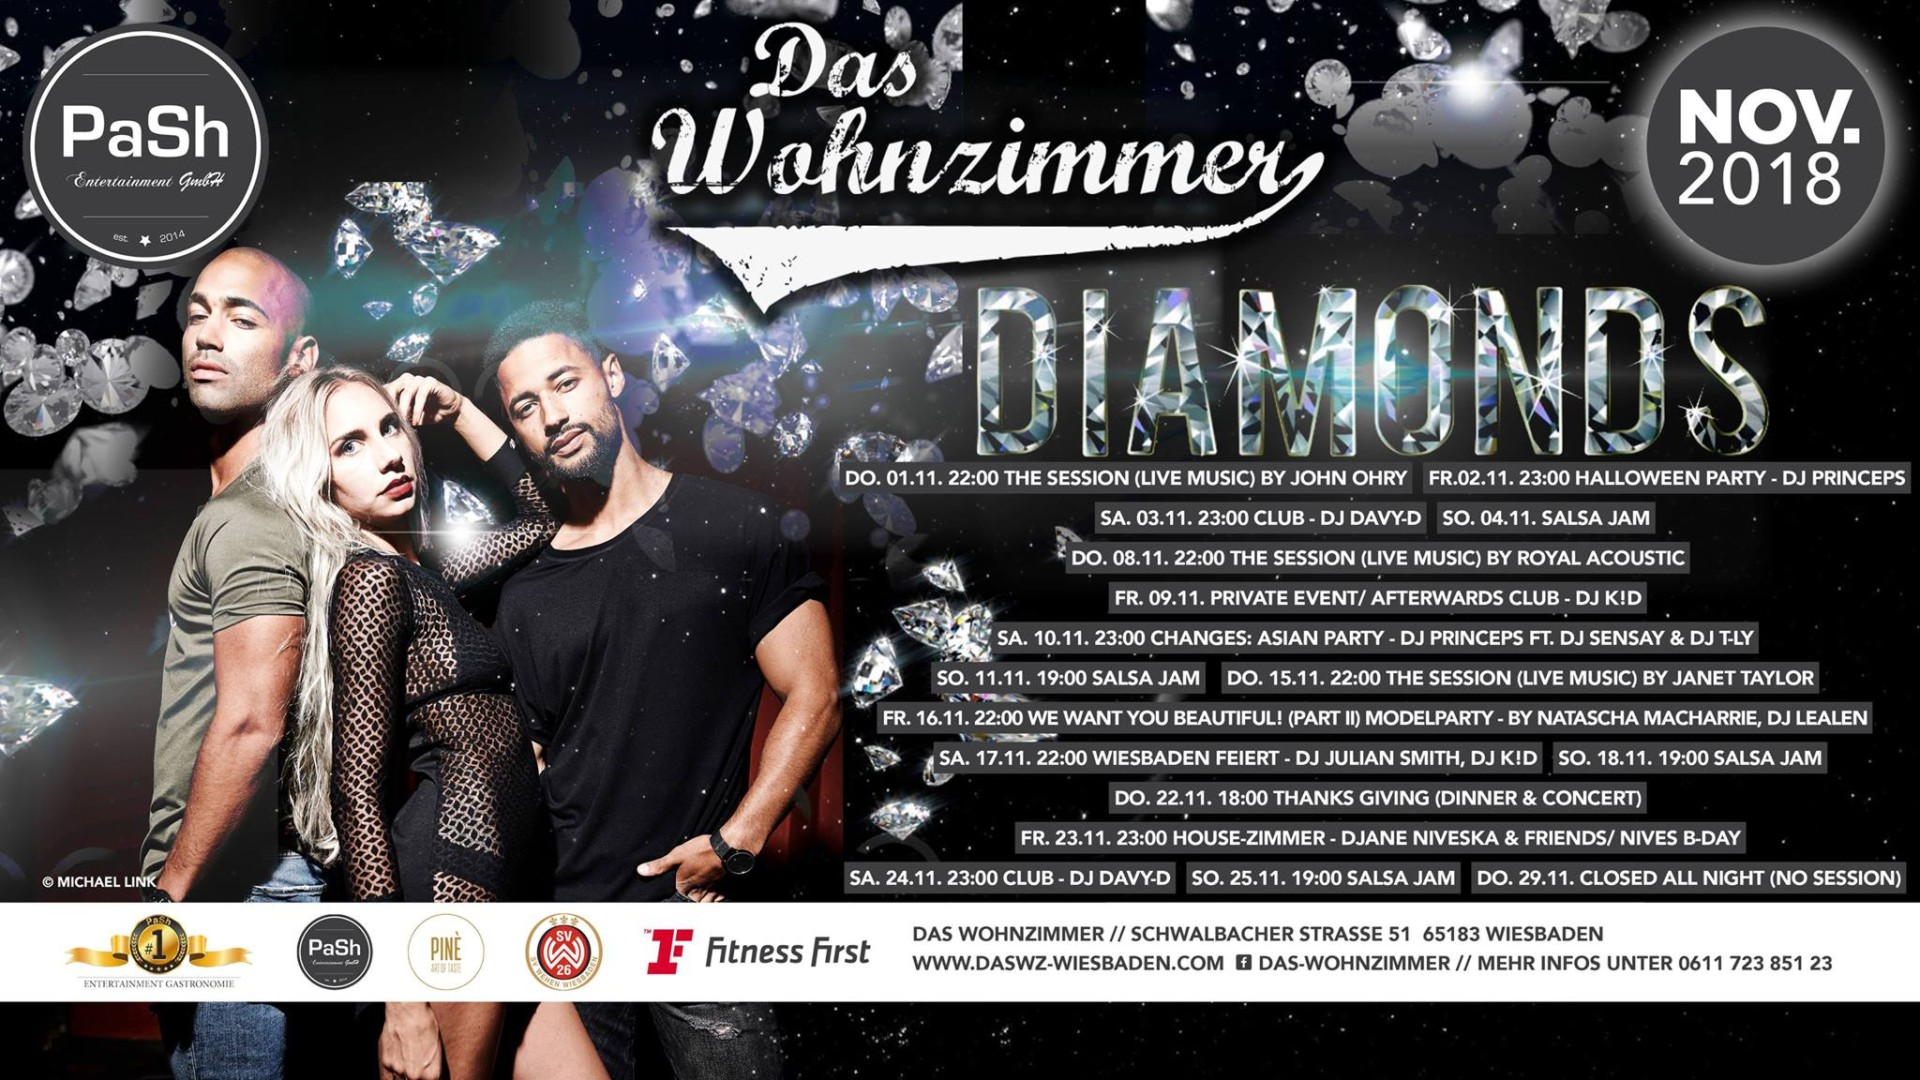 24 11 2018 Diamonds Party With Dj Davy D Das Wohnzimmer Wiesbaden